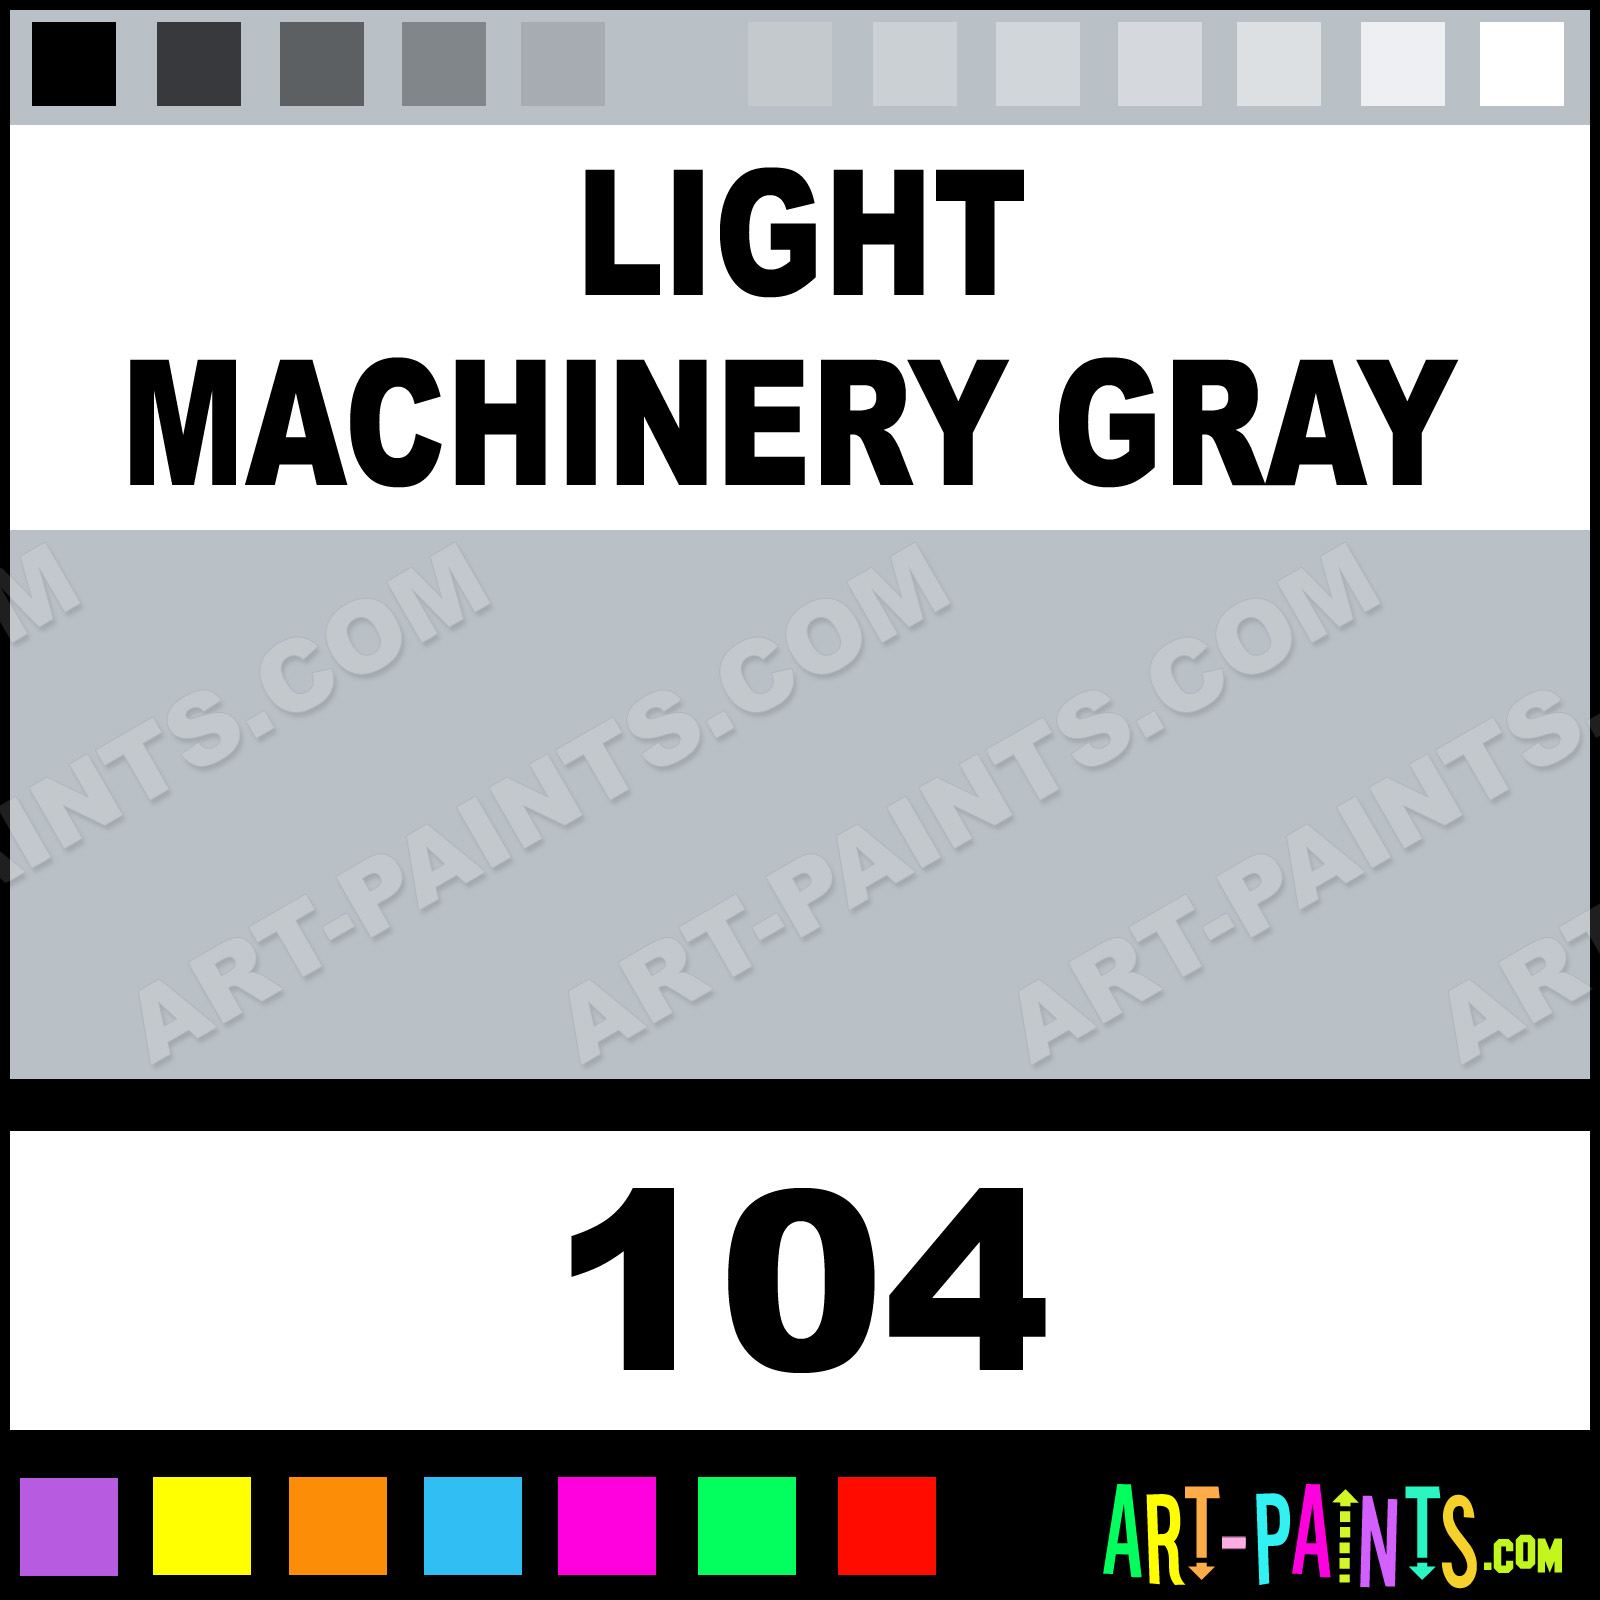 Industrial Grey Paint Light Machinery Gray Industrial Colorworks Enamel Paints